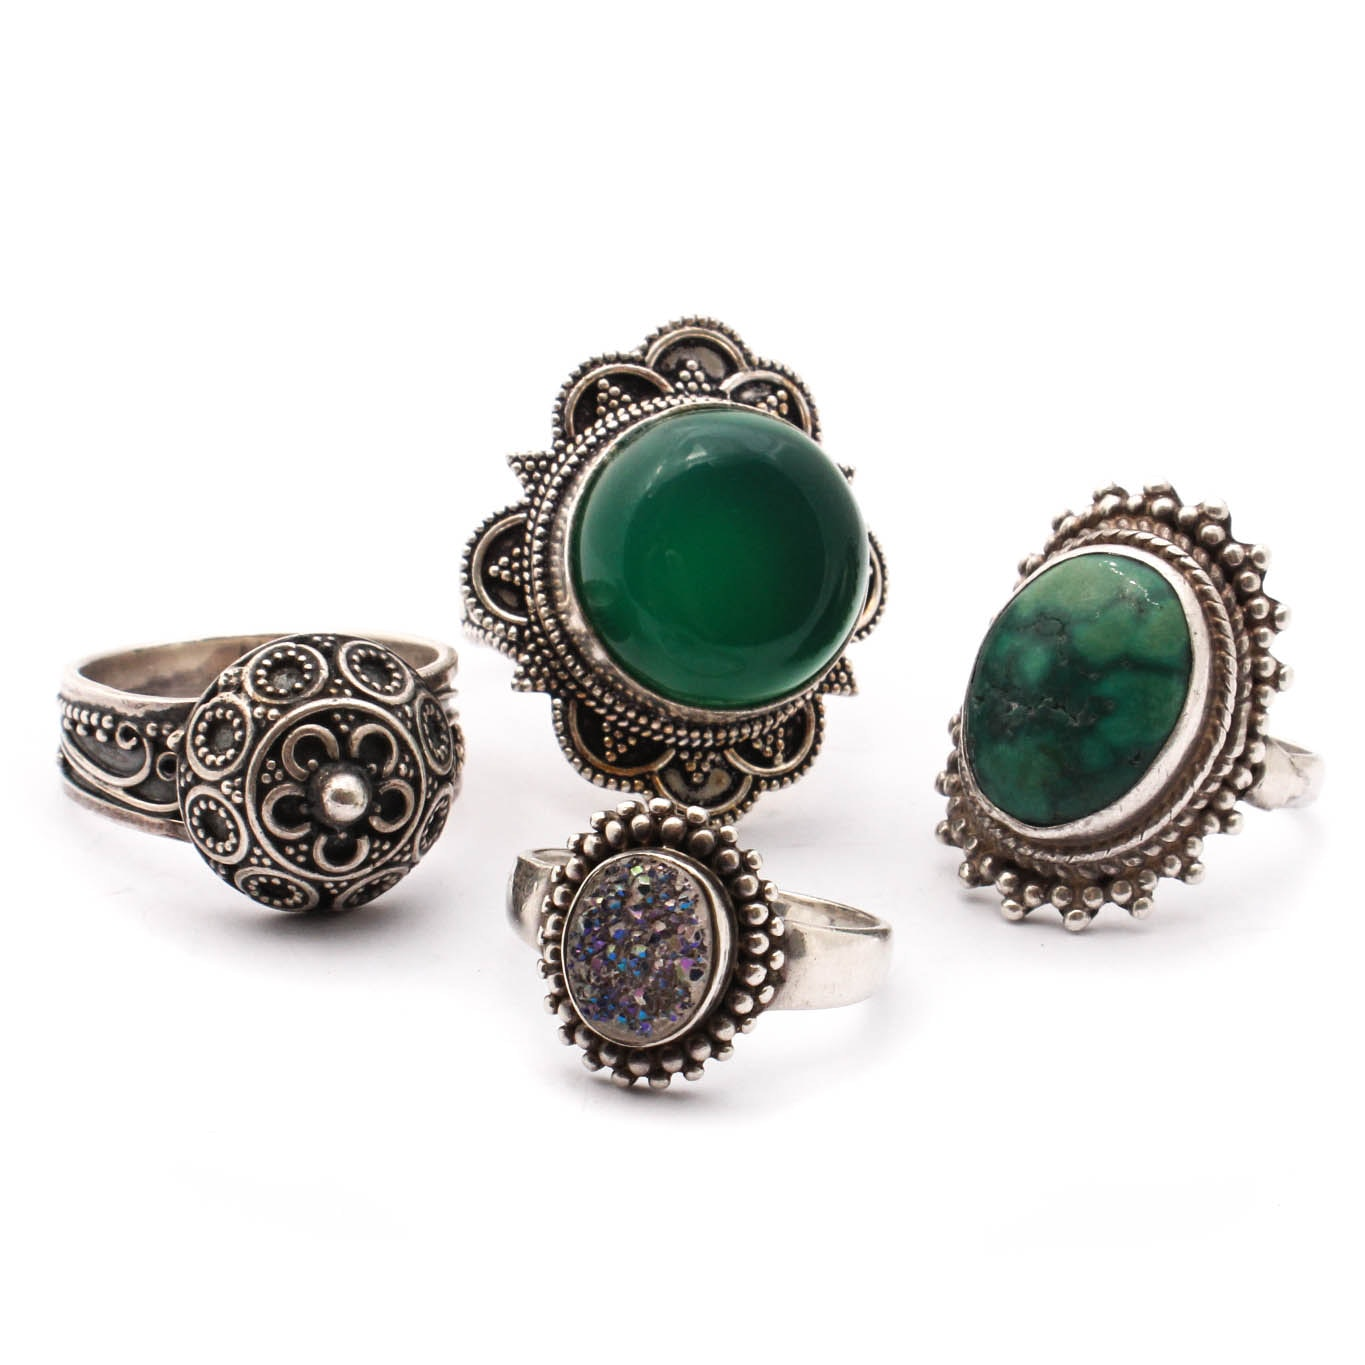 Sterling Silver Ring Selection Featuring Turquoise